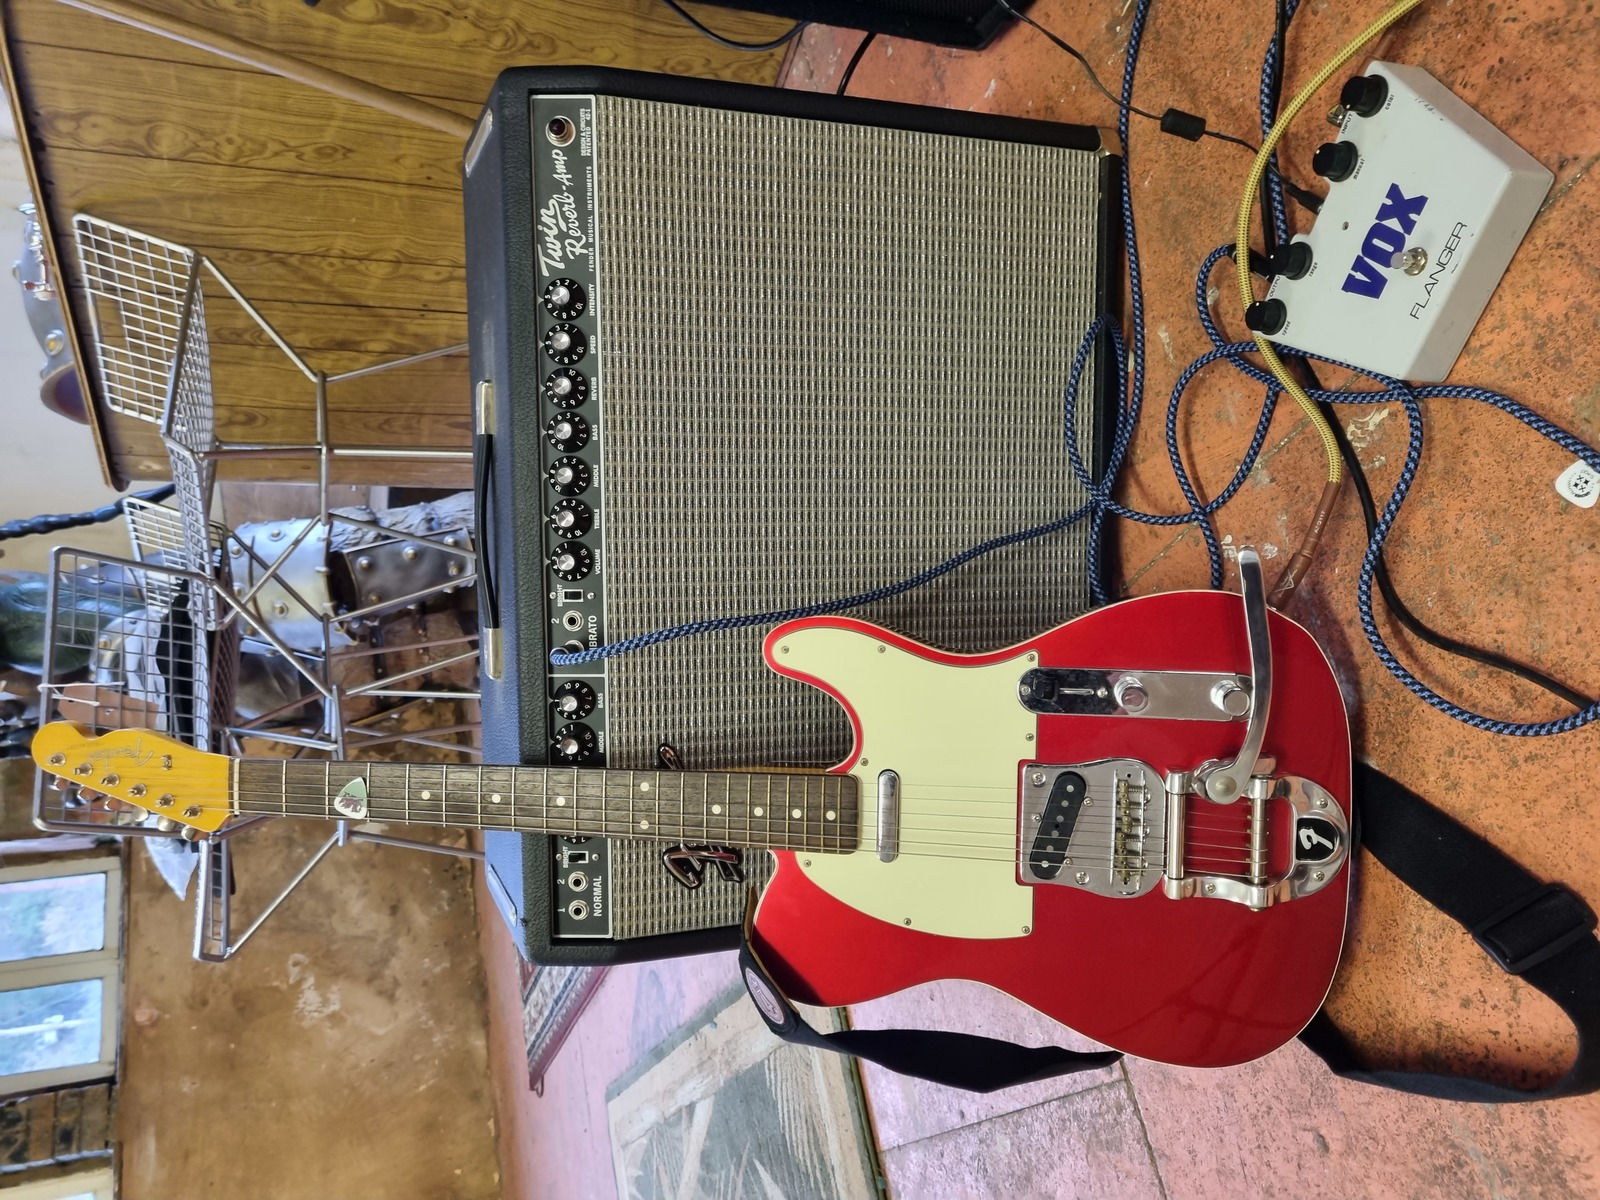 Photo of Fender Twin Reverb Blackface and more gear in a guitar and live